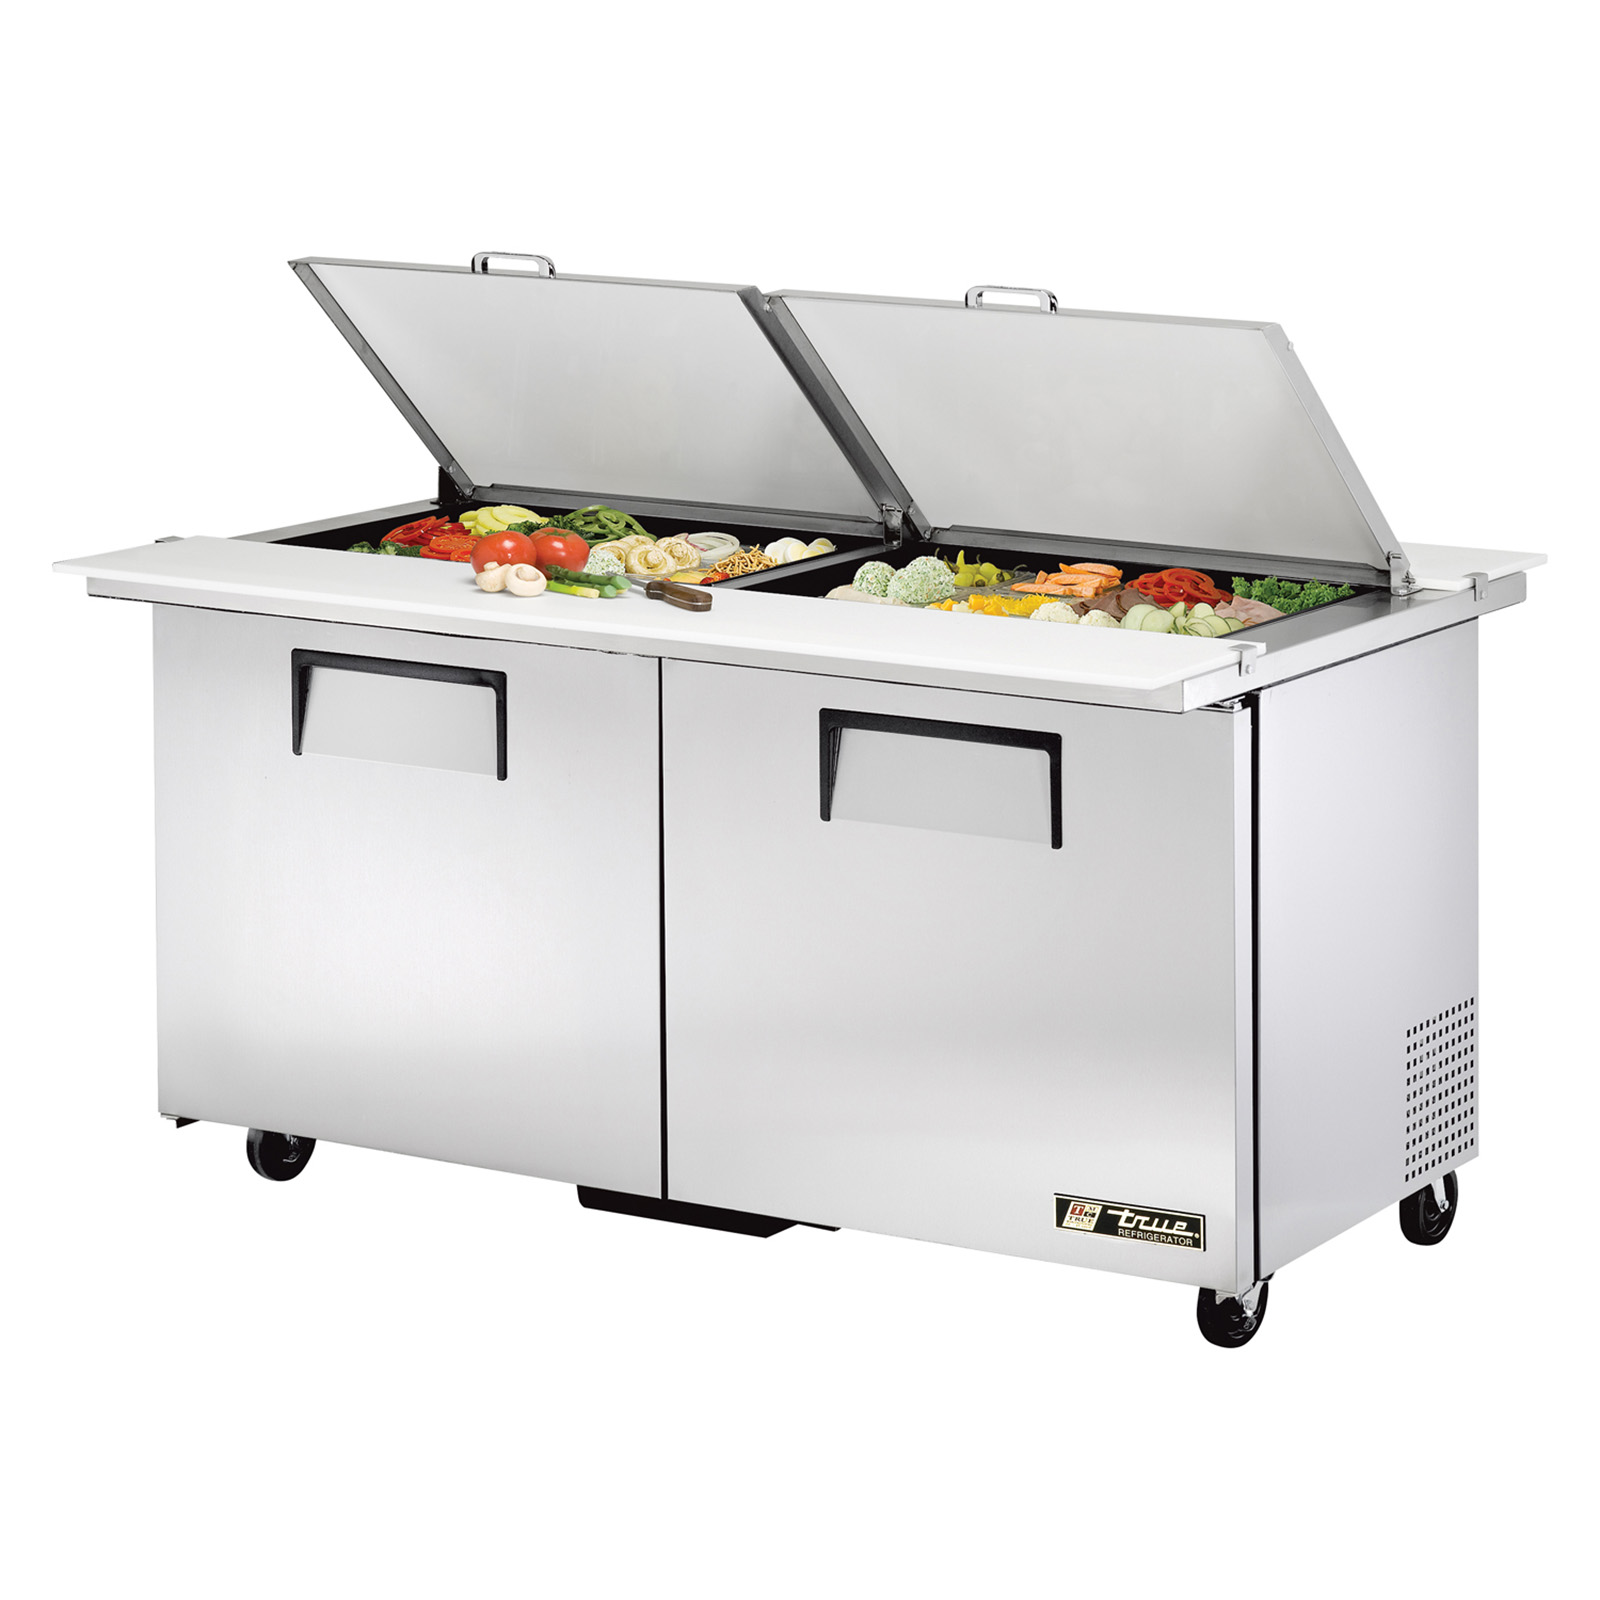 TSSU-60-24M-B-DS-ST True - Dual Side Mega Top Sandwich/Salad Unit (24) 1/6 size (4